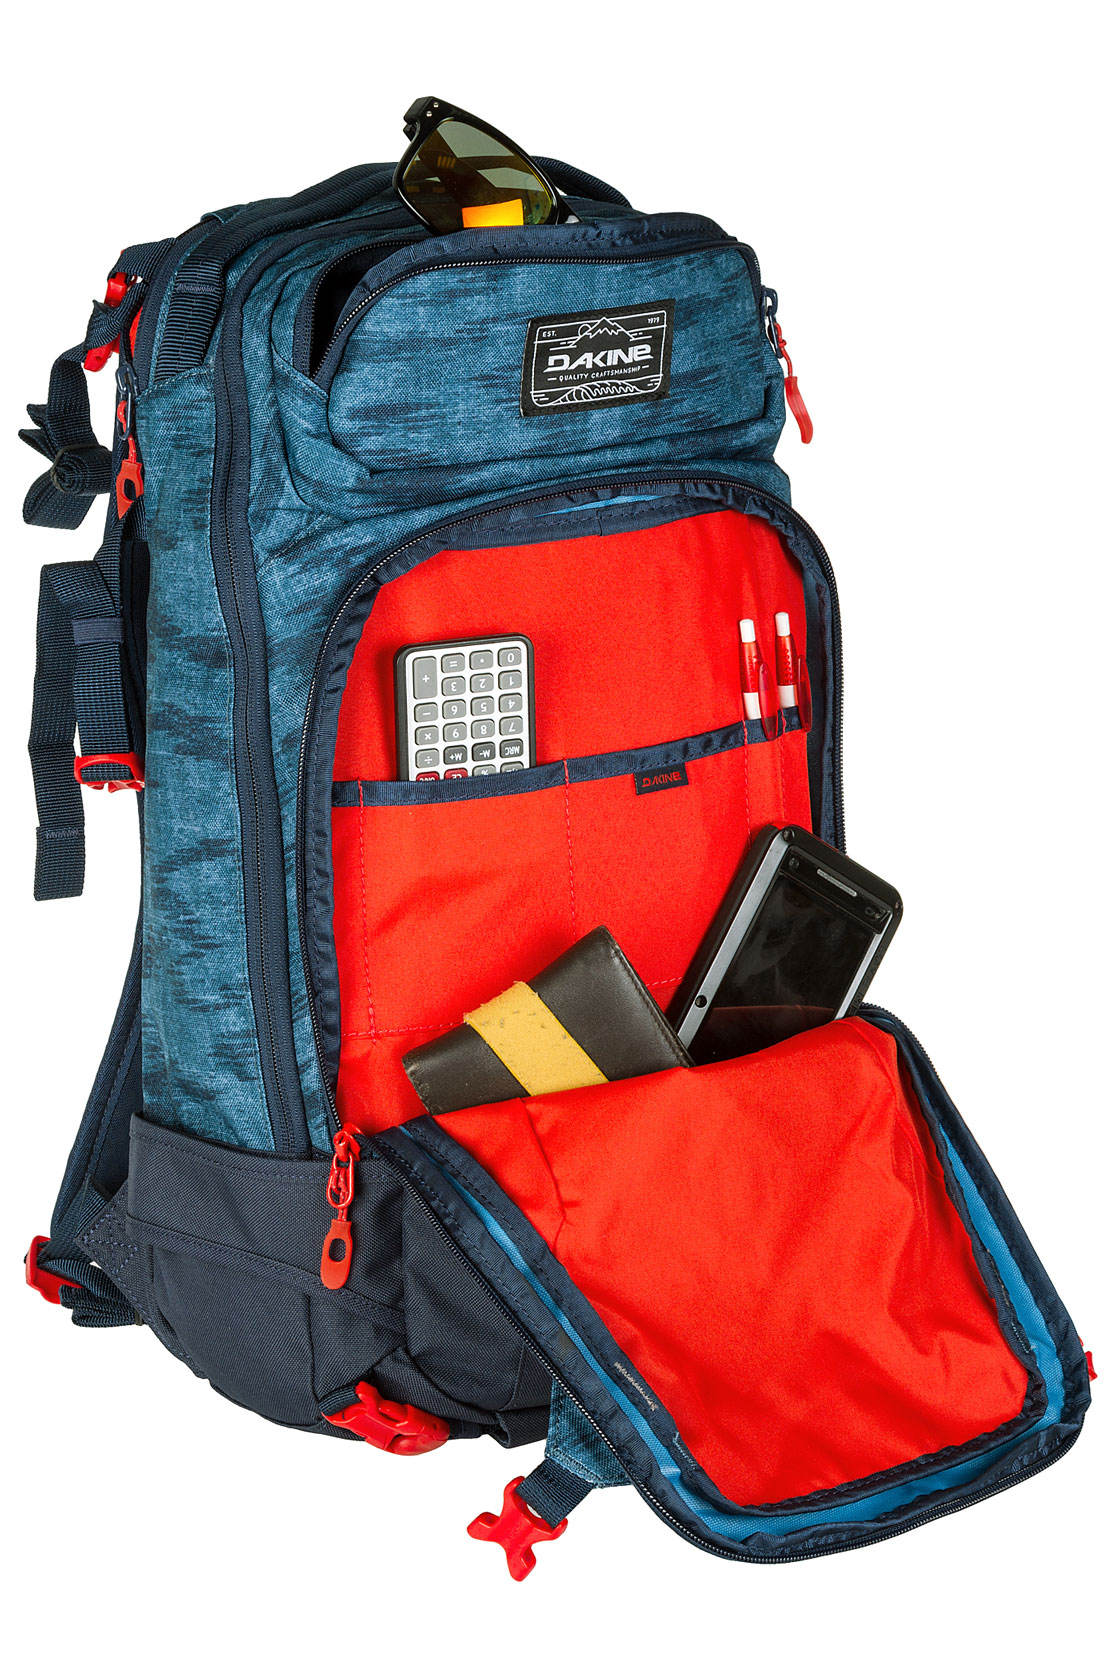 Dakine Heli Pro Backpack 20L (stratus) buy at skatedeluxe